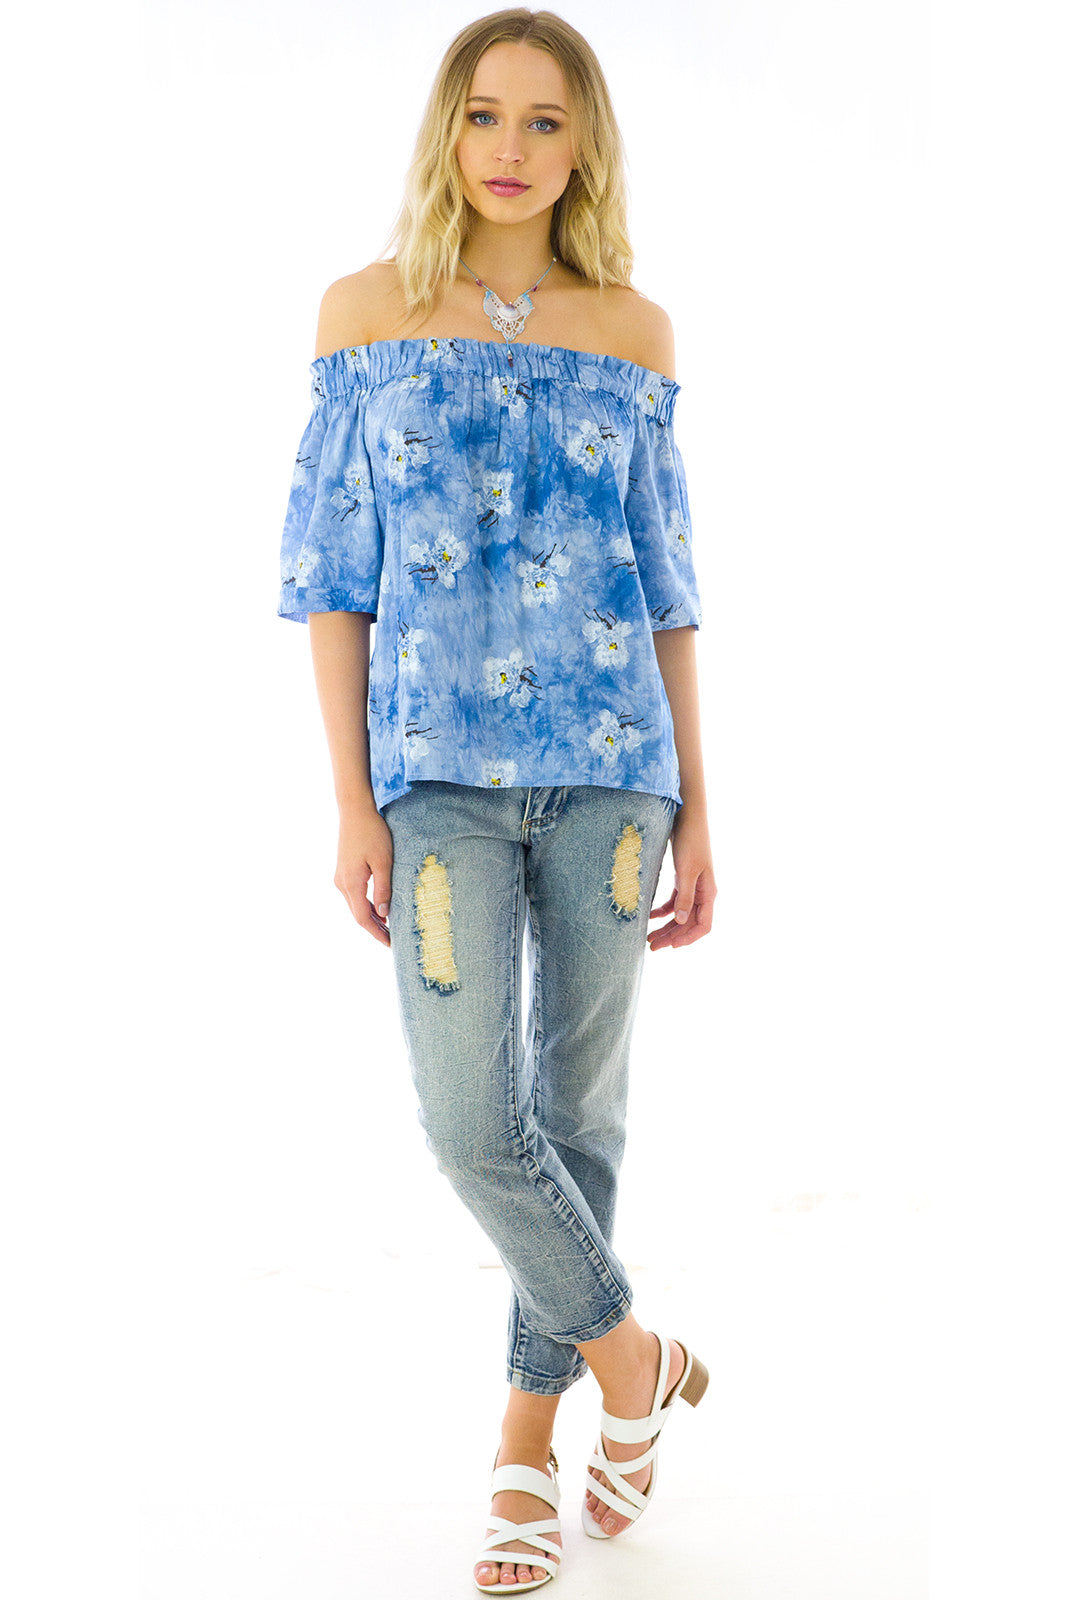 Off the shoulder day tripper top in blue floral